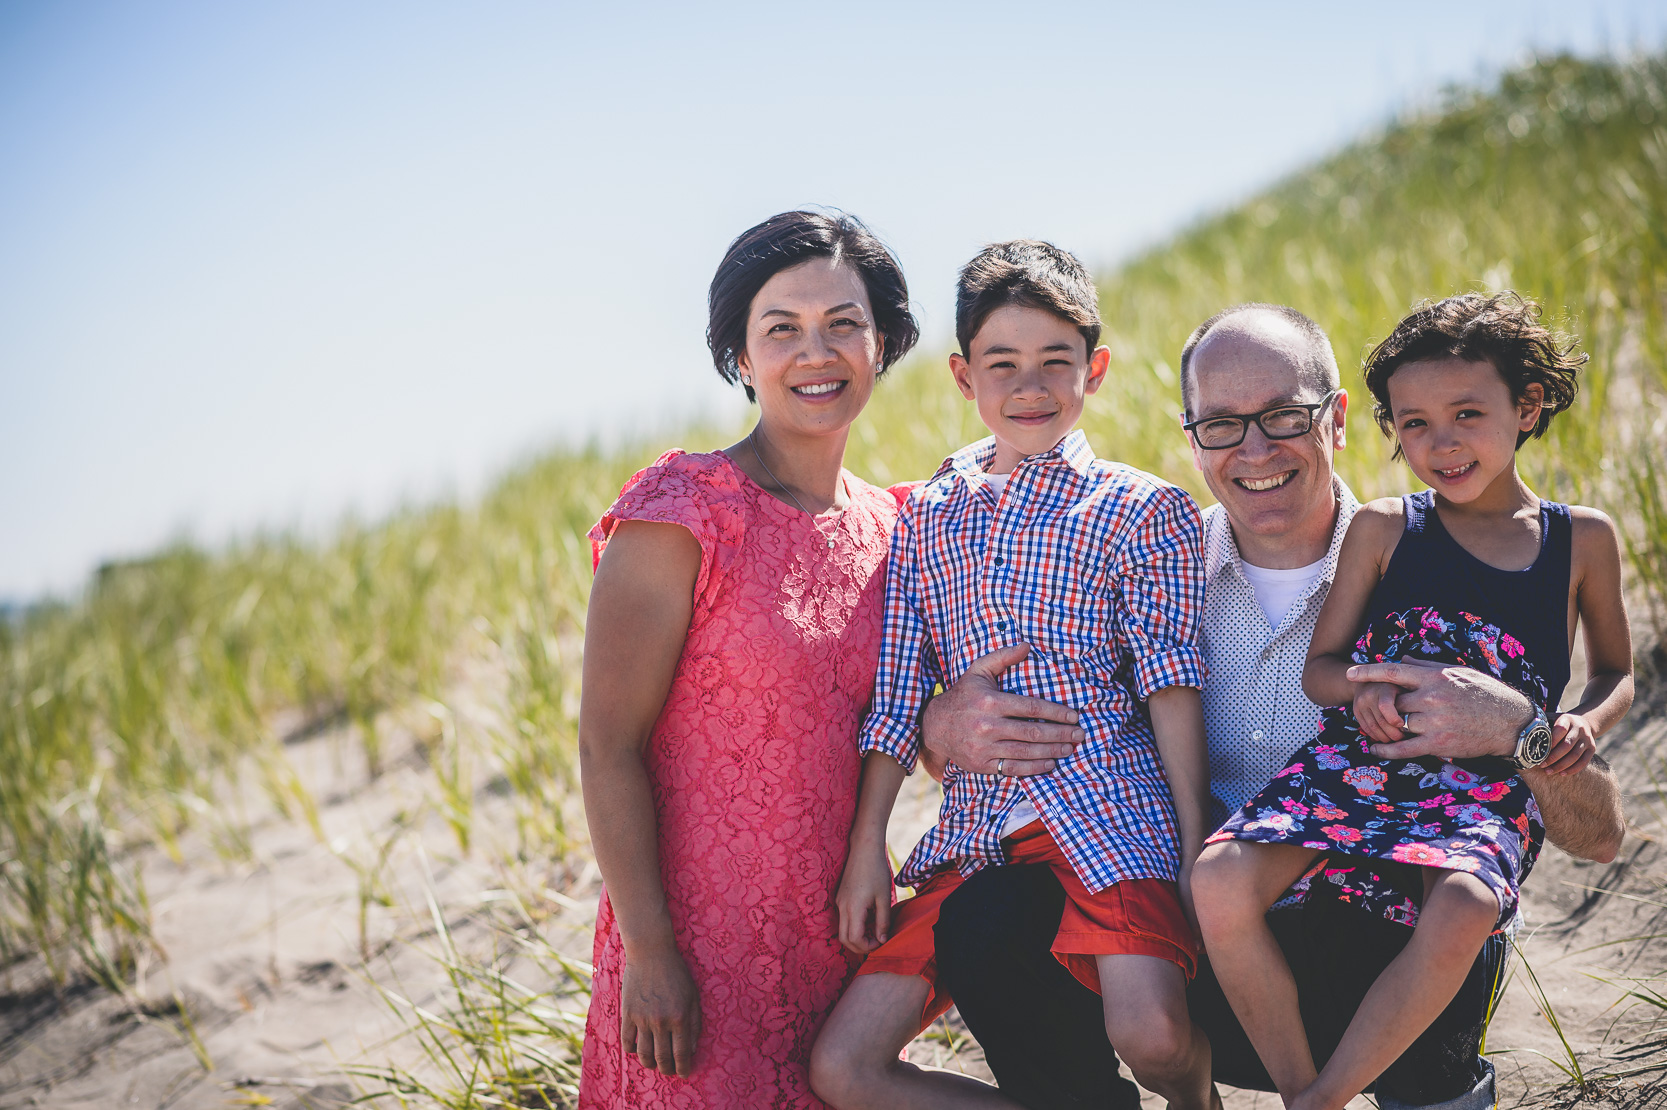 Nigel Fearon Photography | The Lavery Family-8352.jpg